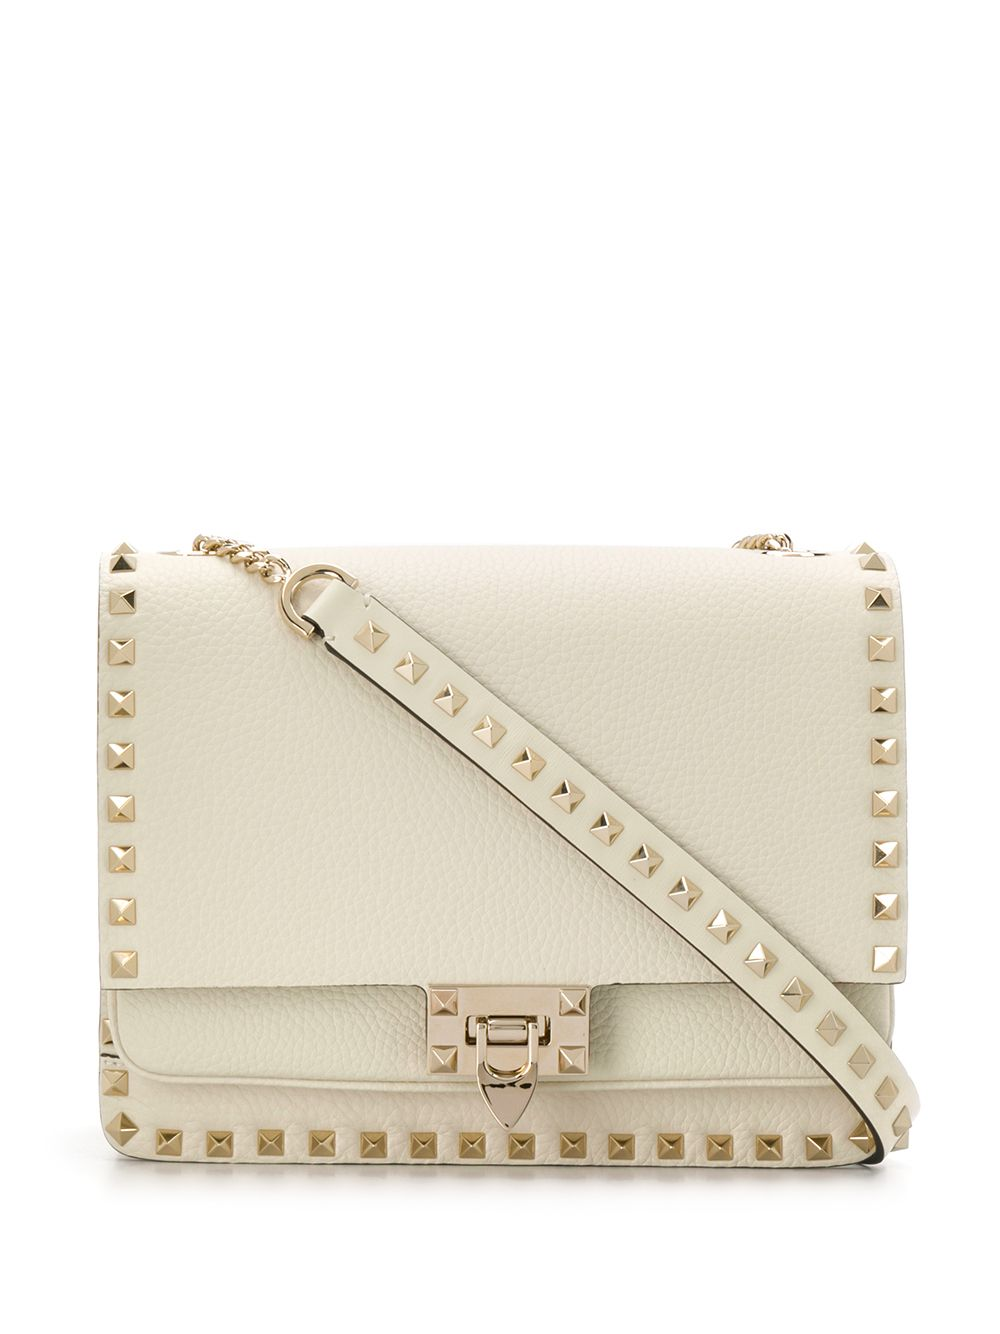 Rockstud Leather Shoulder Bag